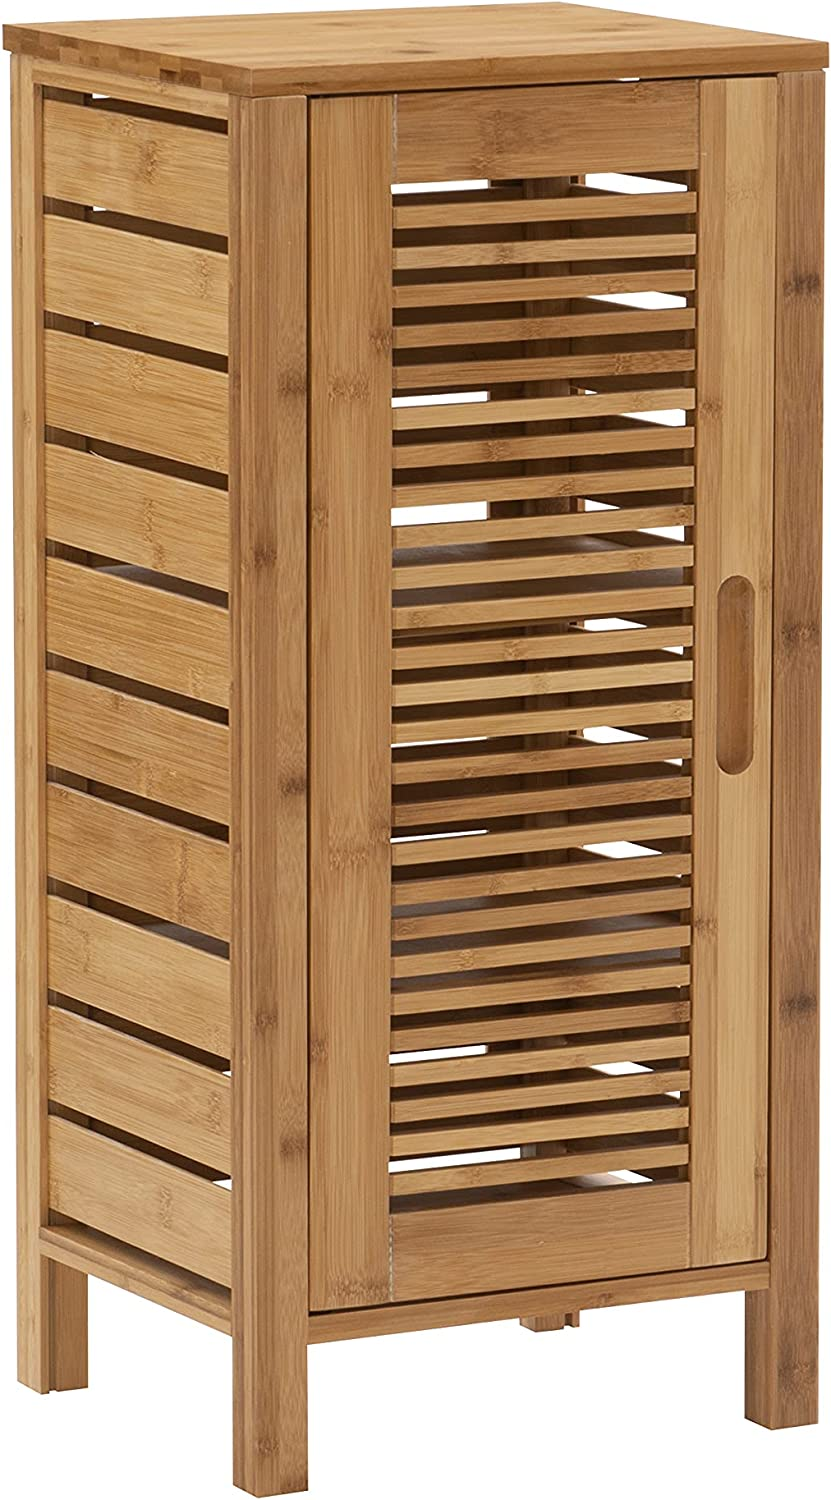 Linon Finn Bamboo Bathroom Door Popular products One Cabinet Los Angeles Mall Brown